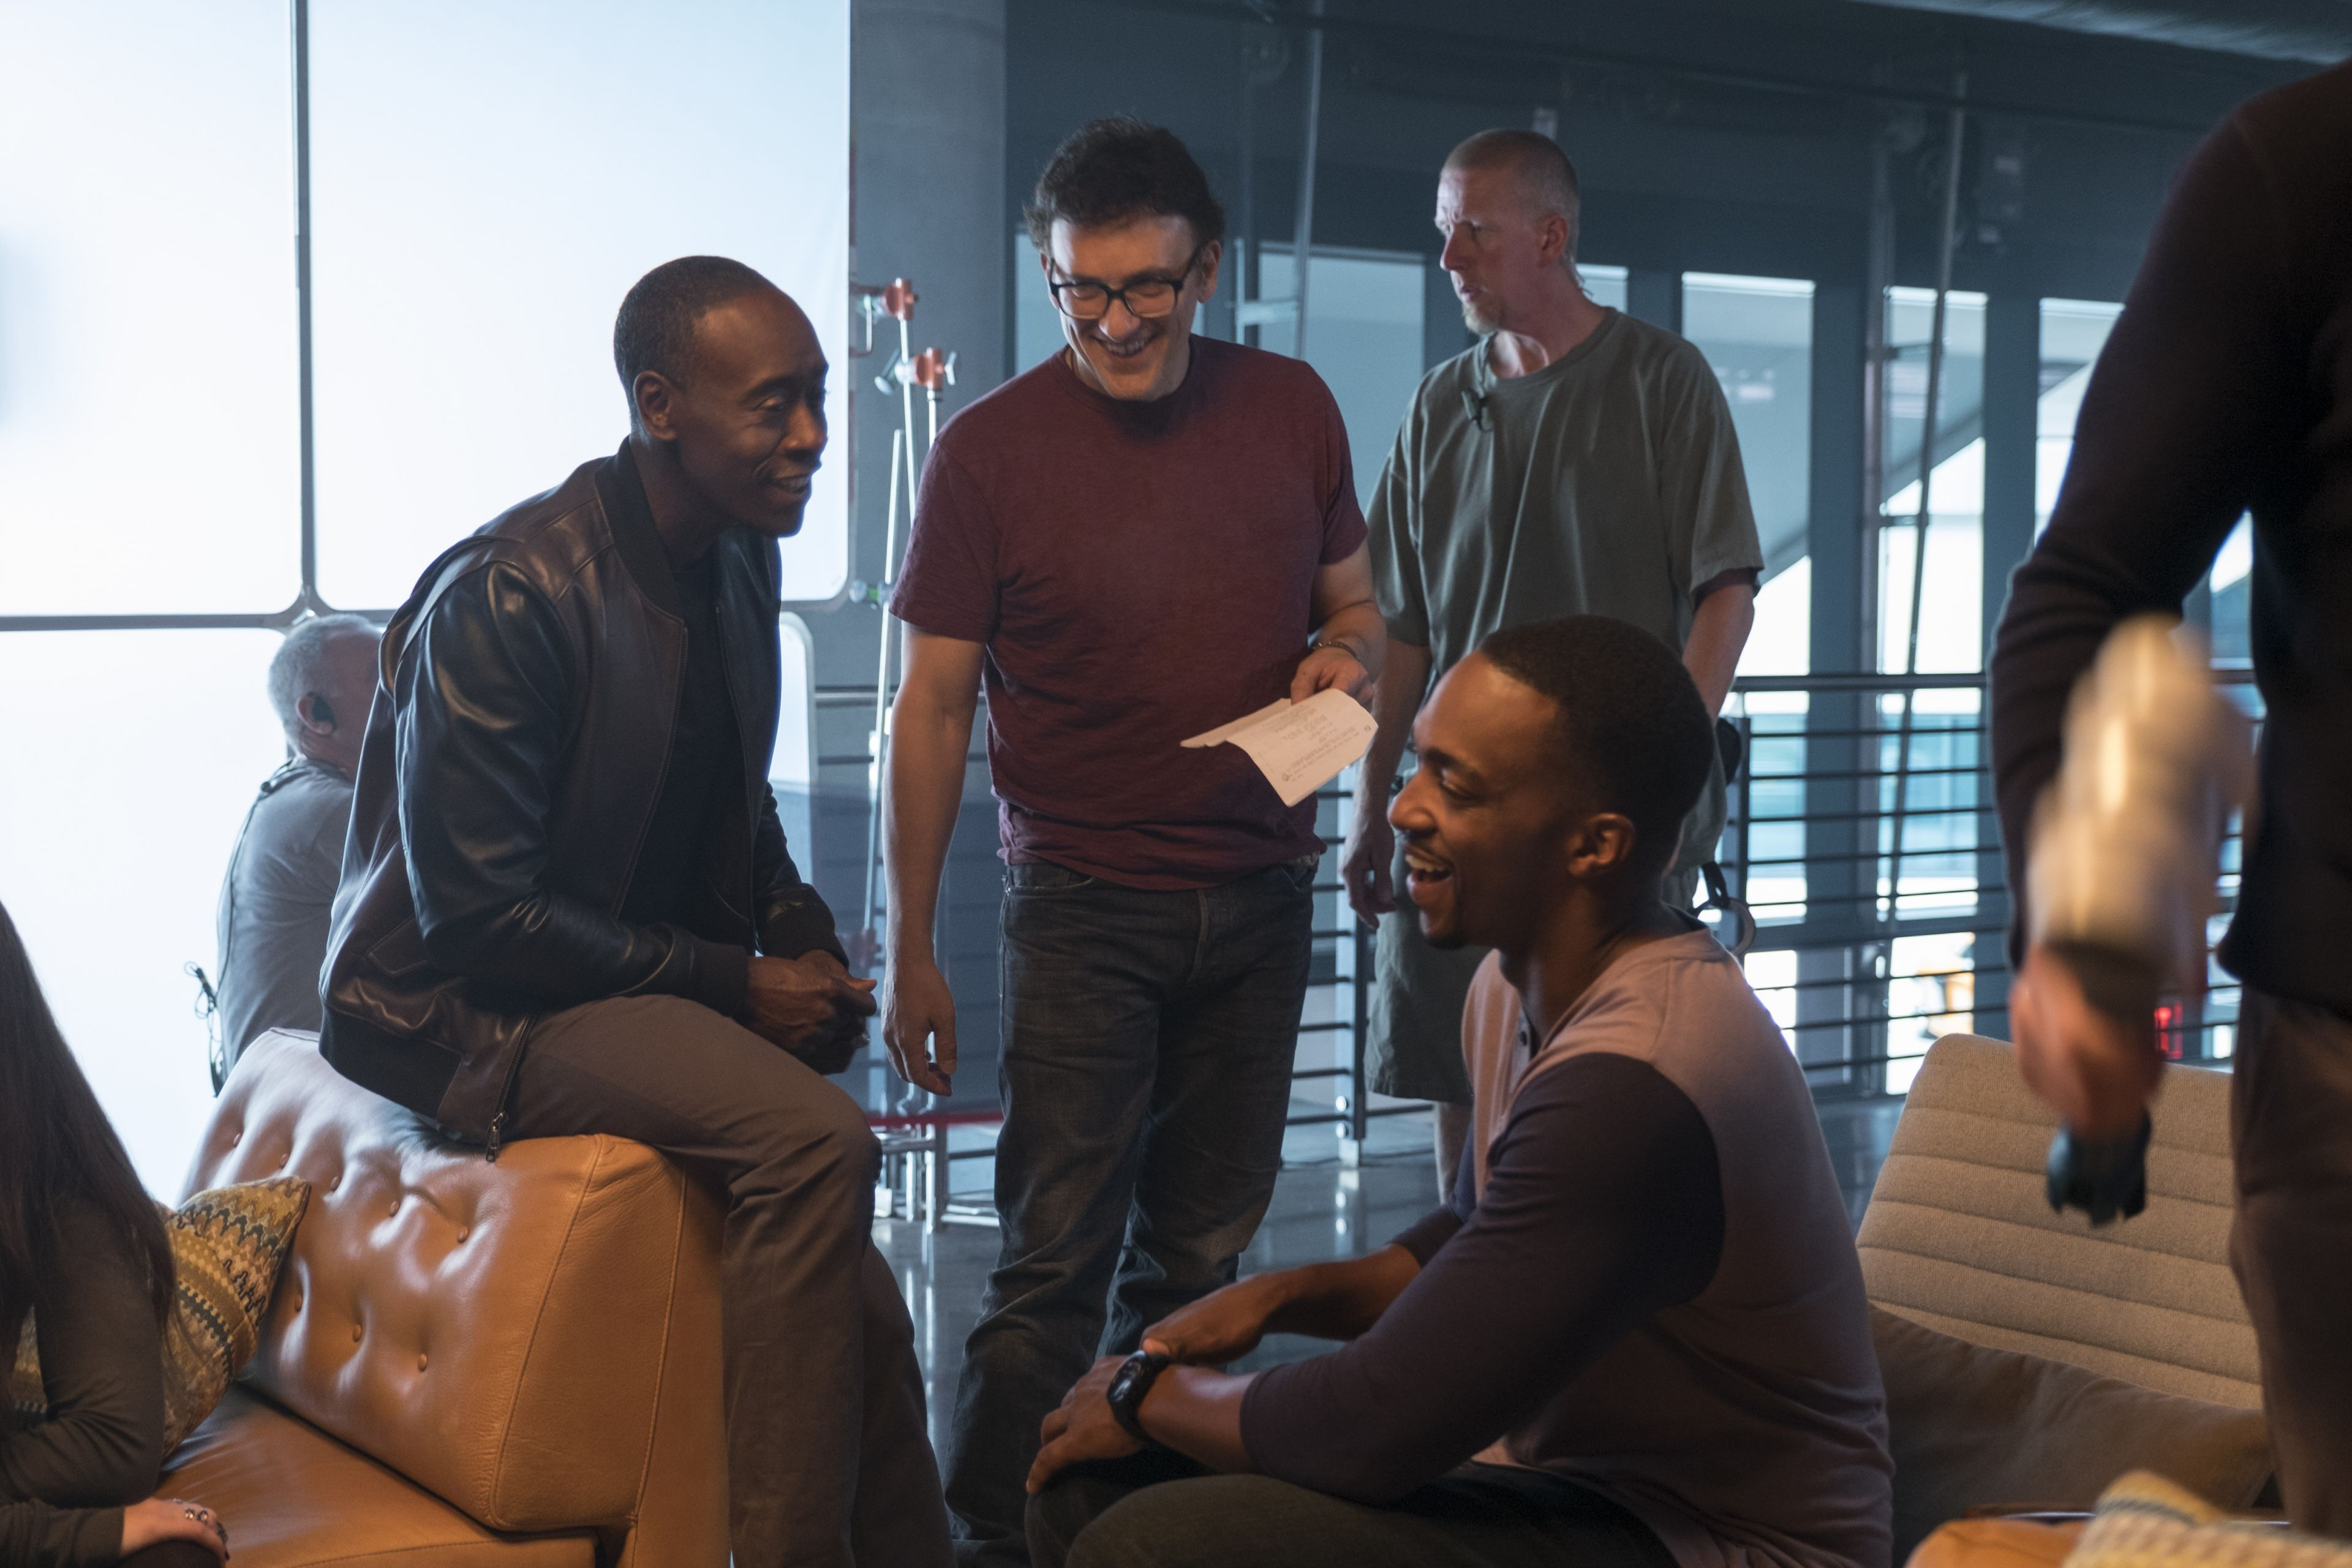 Captain America: Civil War L to R: Don Cheadle (James Rhodes/War Machine), Director Anthony Russo, and Anthony Mackie (Sam Wilson/Falcon) on set. Ph: Zade Rosenthal ©Marvel 2016